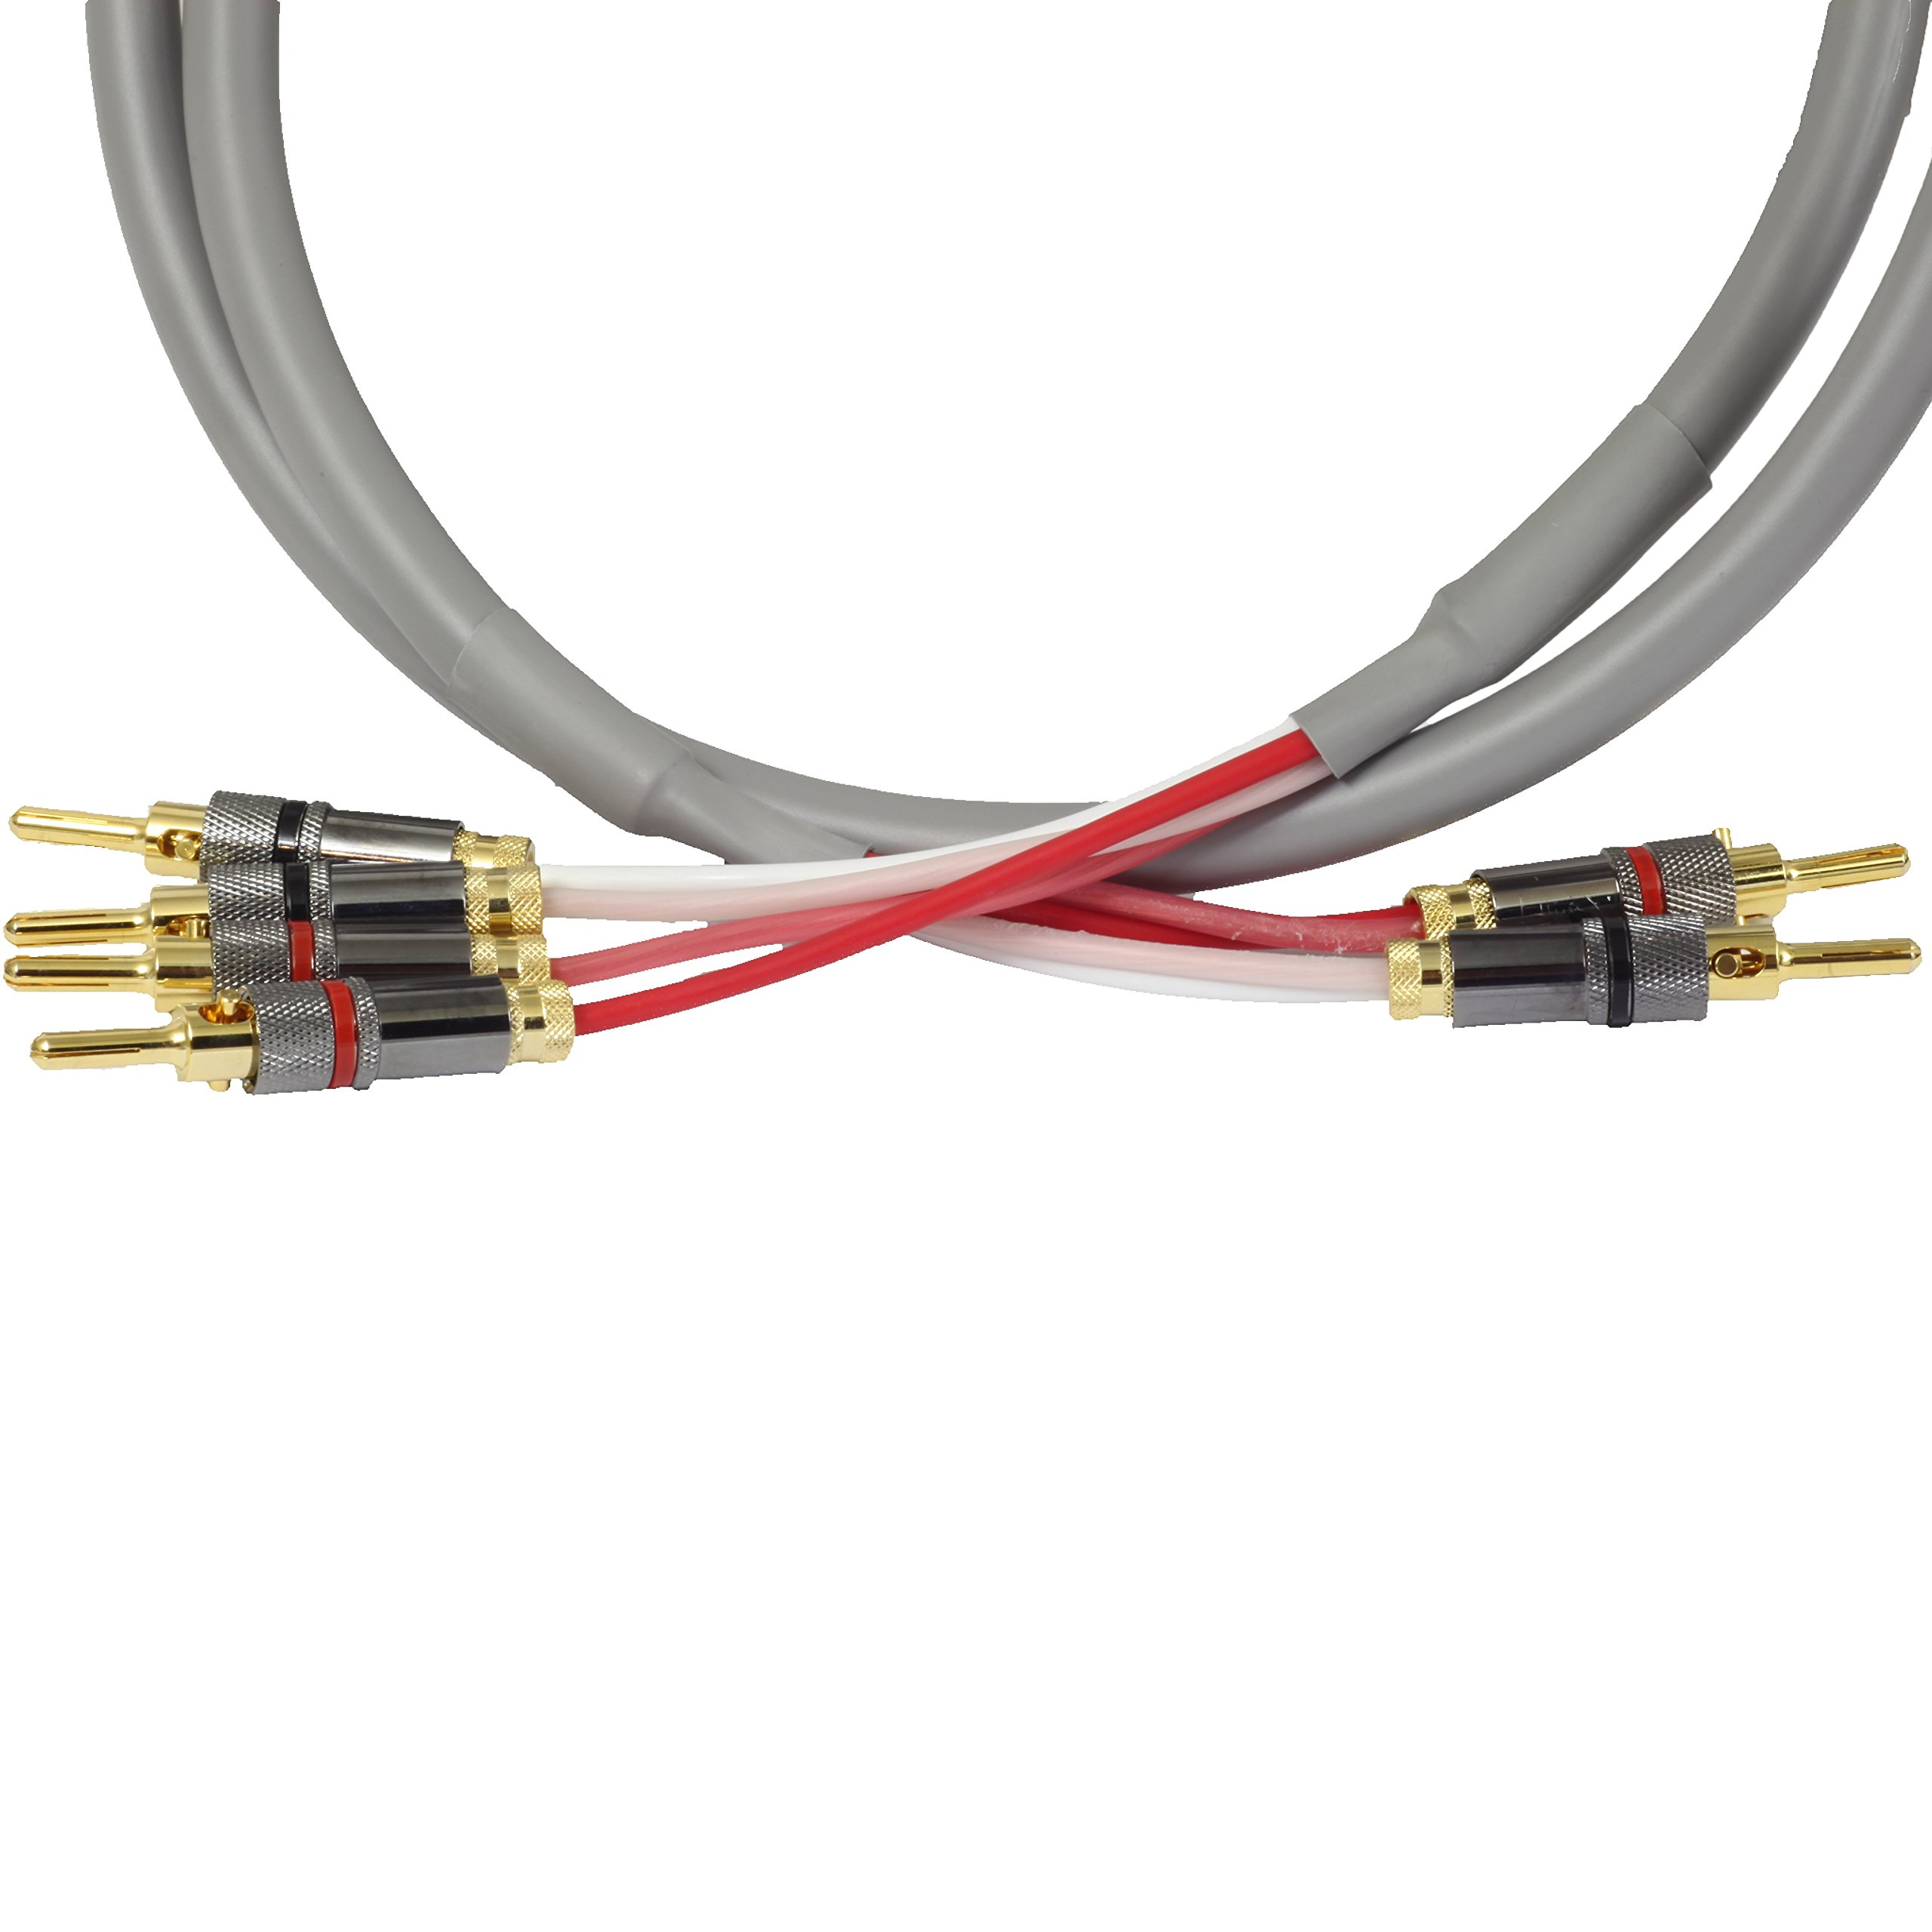 Blue Jeans Cable Canare 4S11 Speaker Cable, with Welded Locking Bananas, Bi-Wire Terminations, 6 foot (single cable -- for one speaker); Assembled in the USA